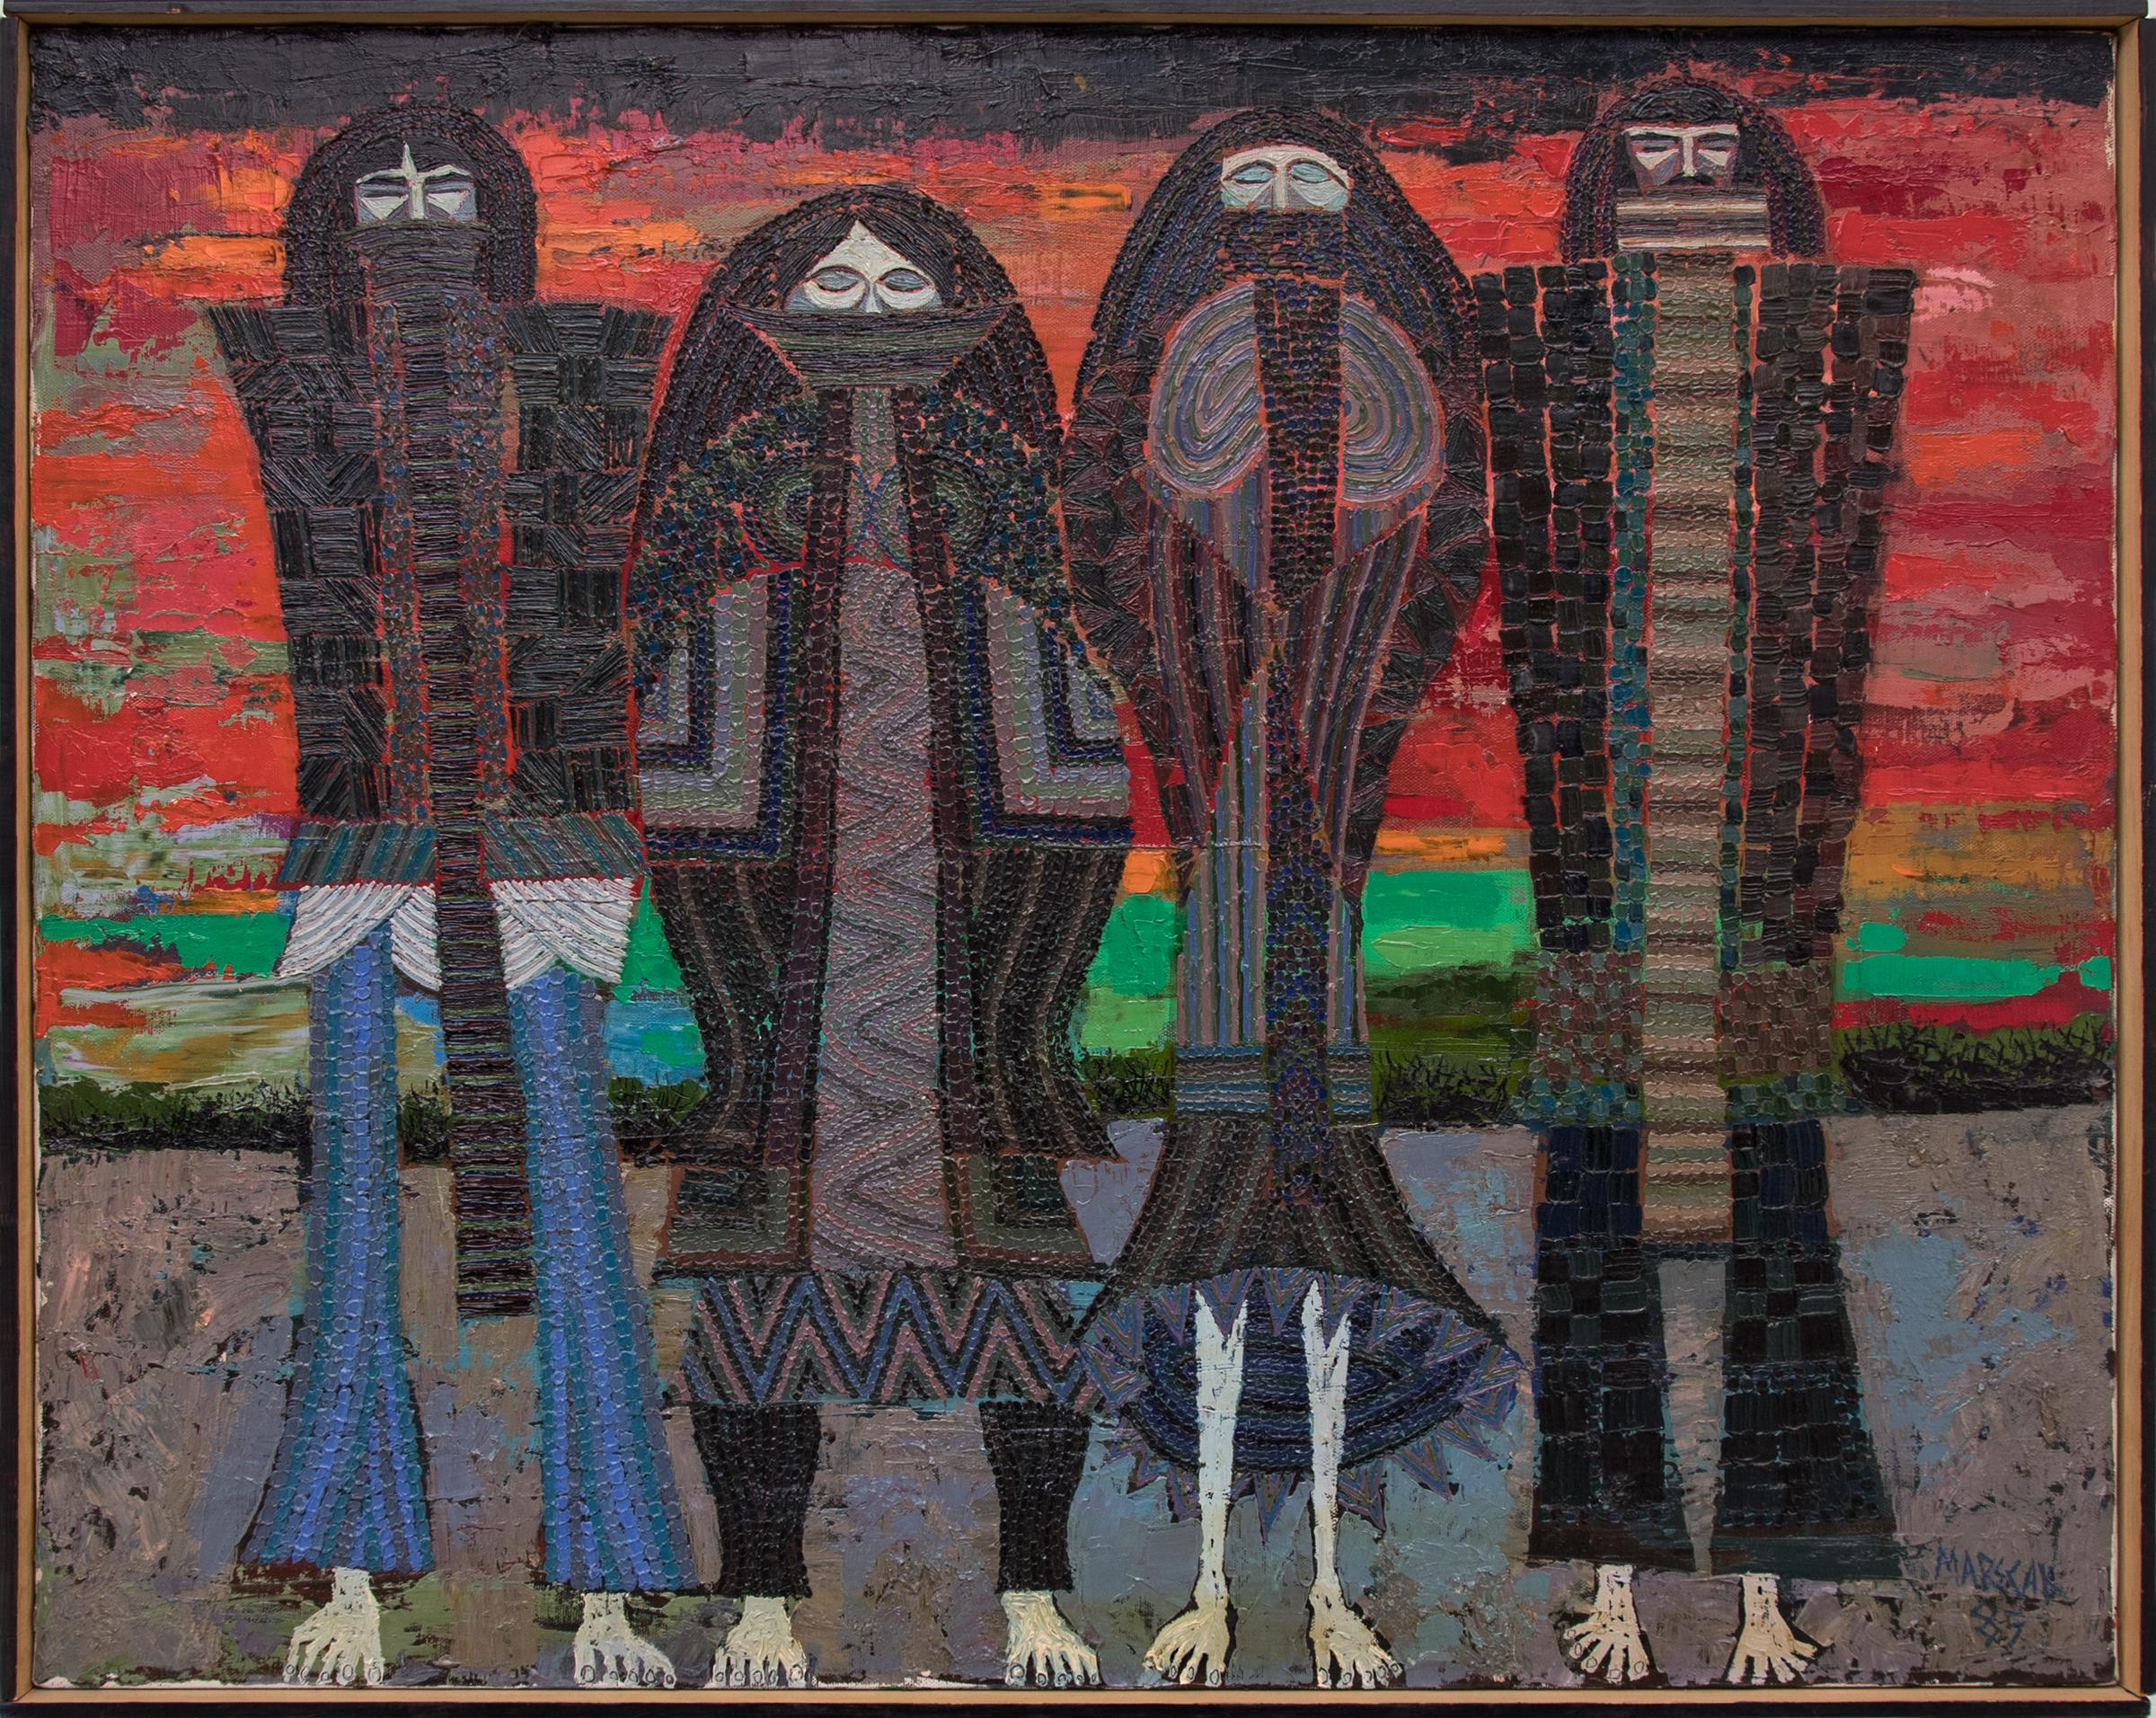 The Four Winter Months (Semi Abstract Figures in Black, Blue, Red, Gray, Green)